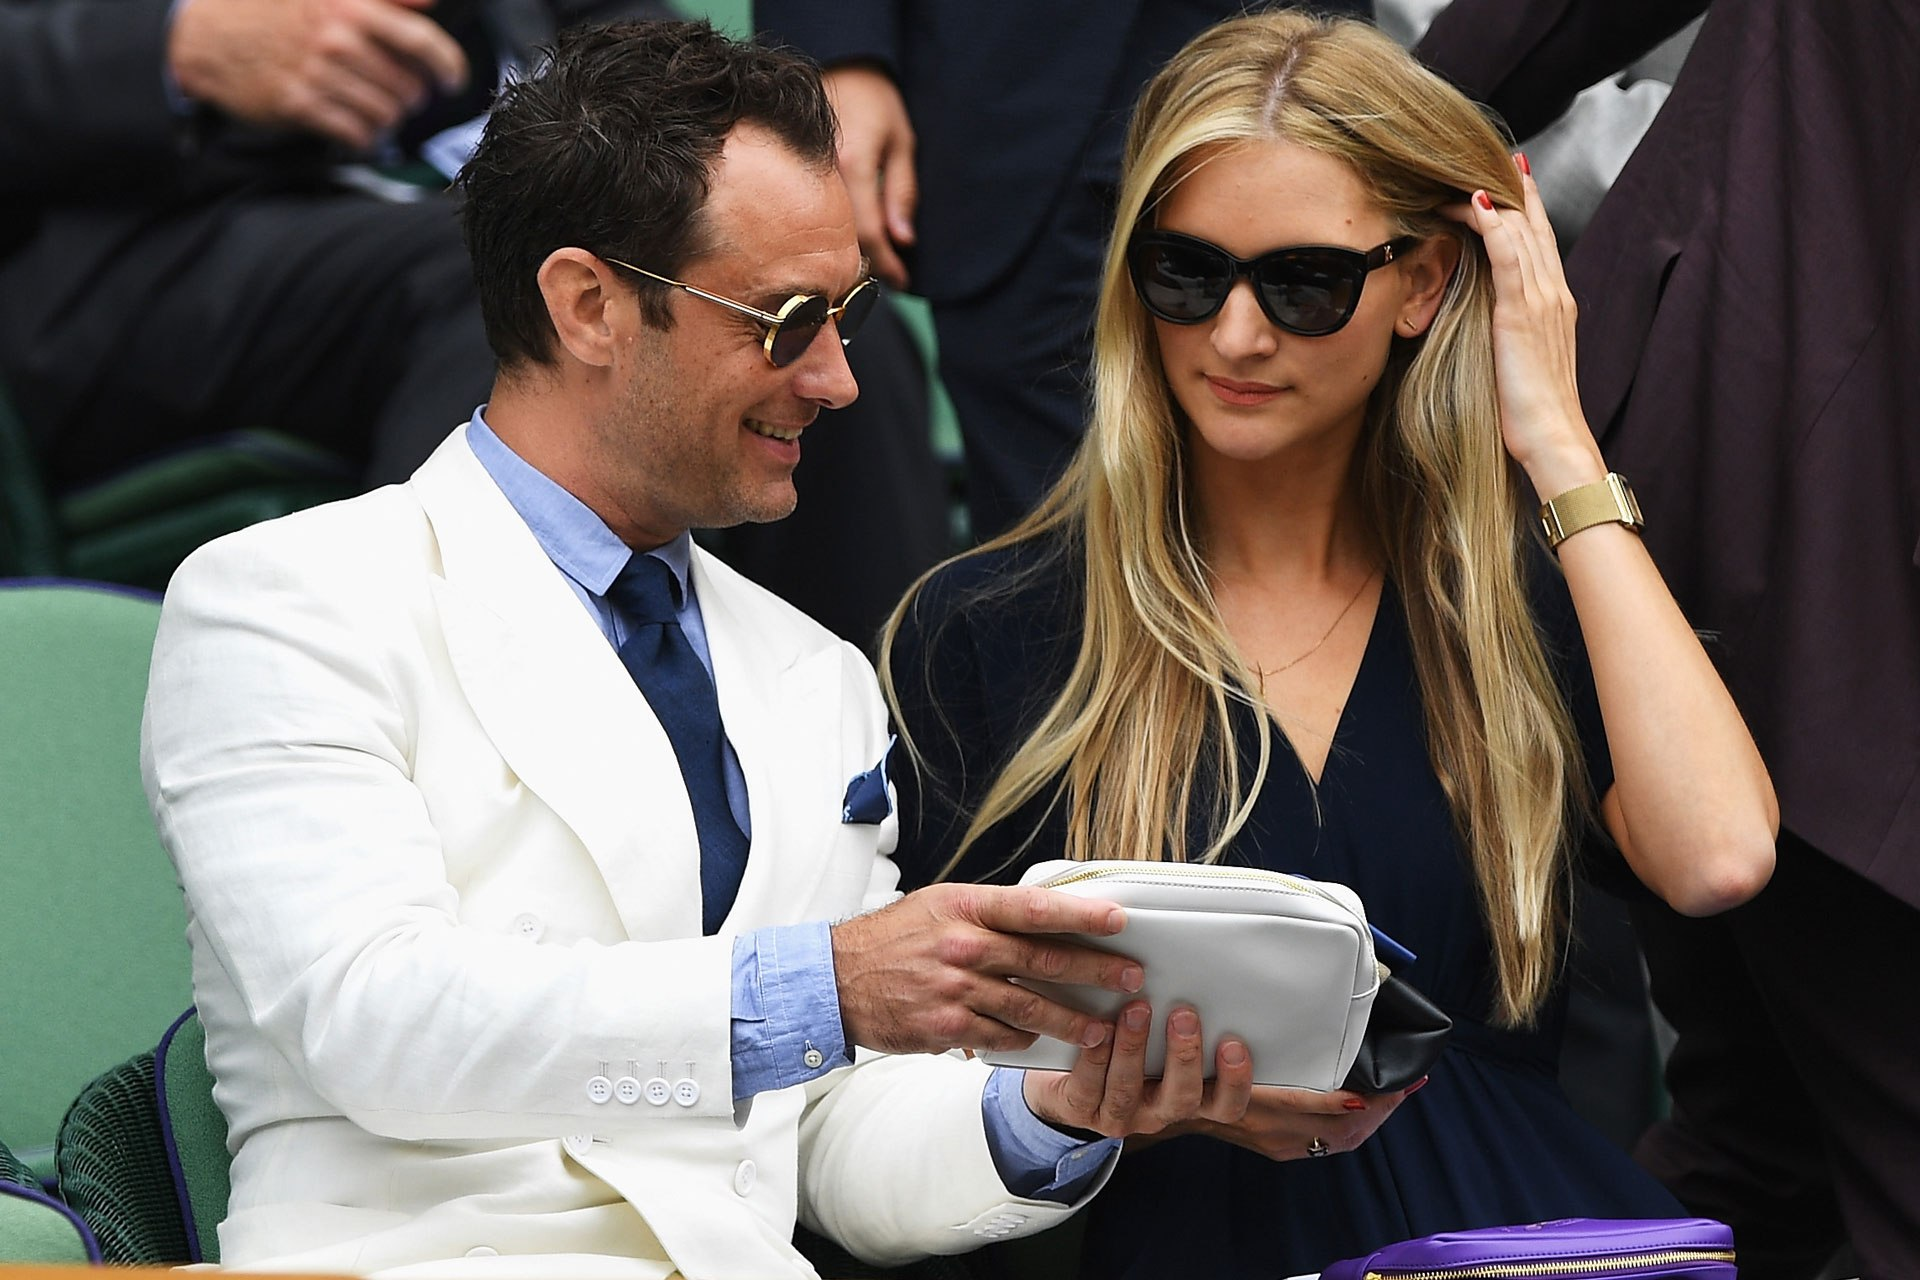 Jude Law and Phillipa Coan at Wimbeldon in 2016. Image credit: Getty Images